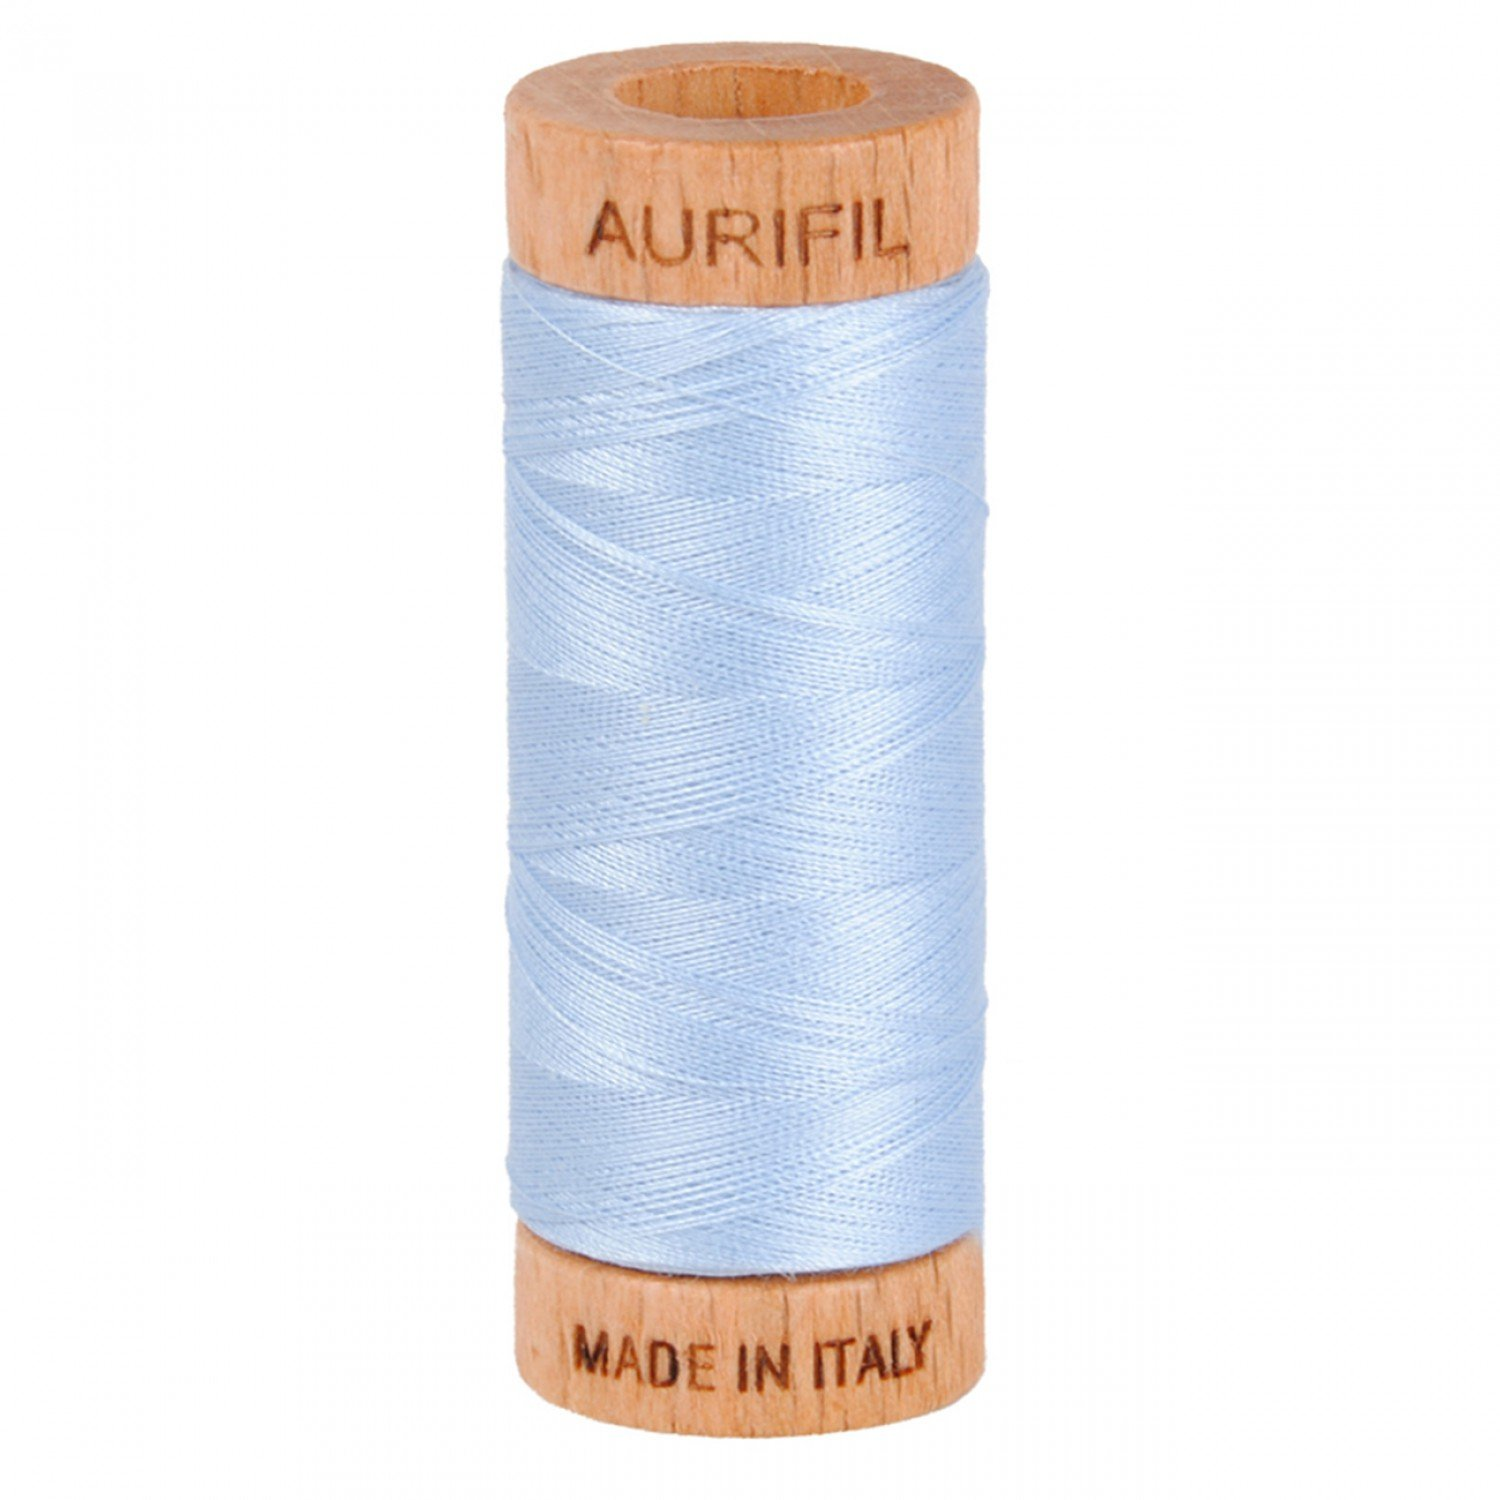 80 wt Aurifil - 2710 Light Robin's Egg